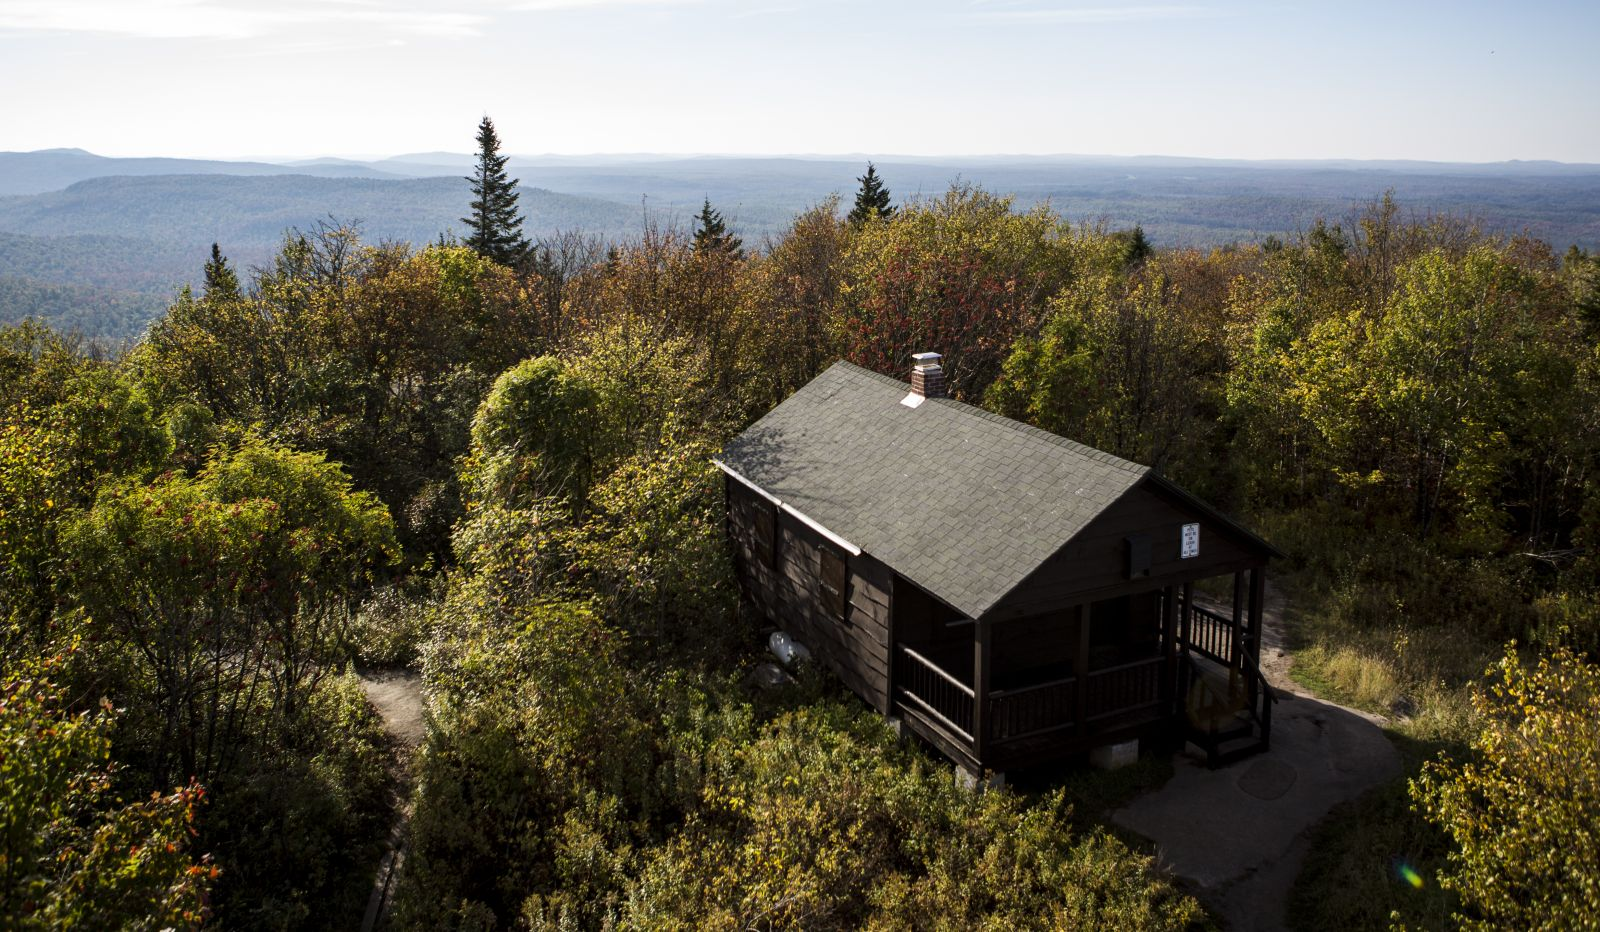 The ranger cabin as seen from the top of the fire tower.